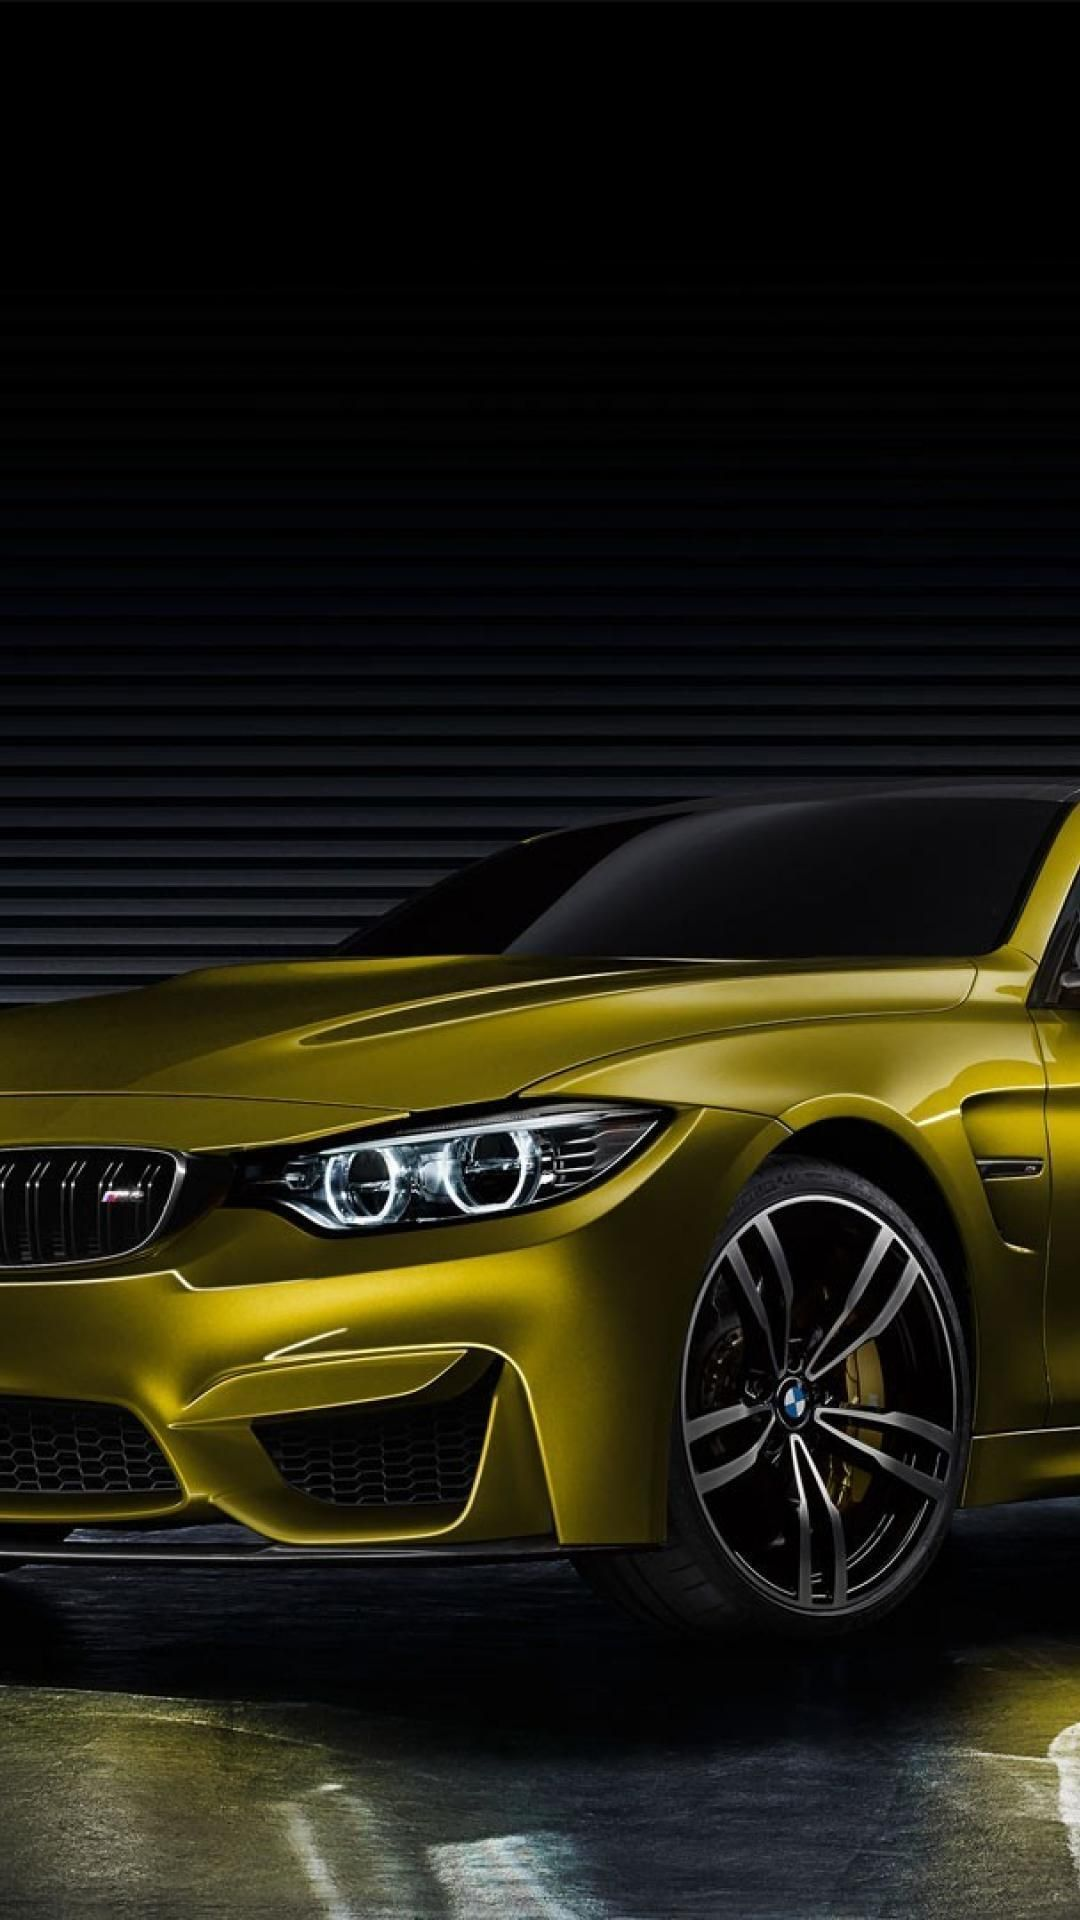 Bmw M4 Wallpaper 4k Handy